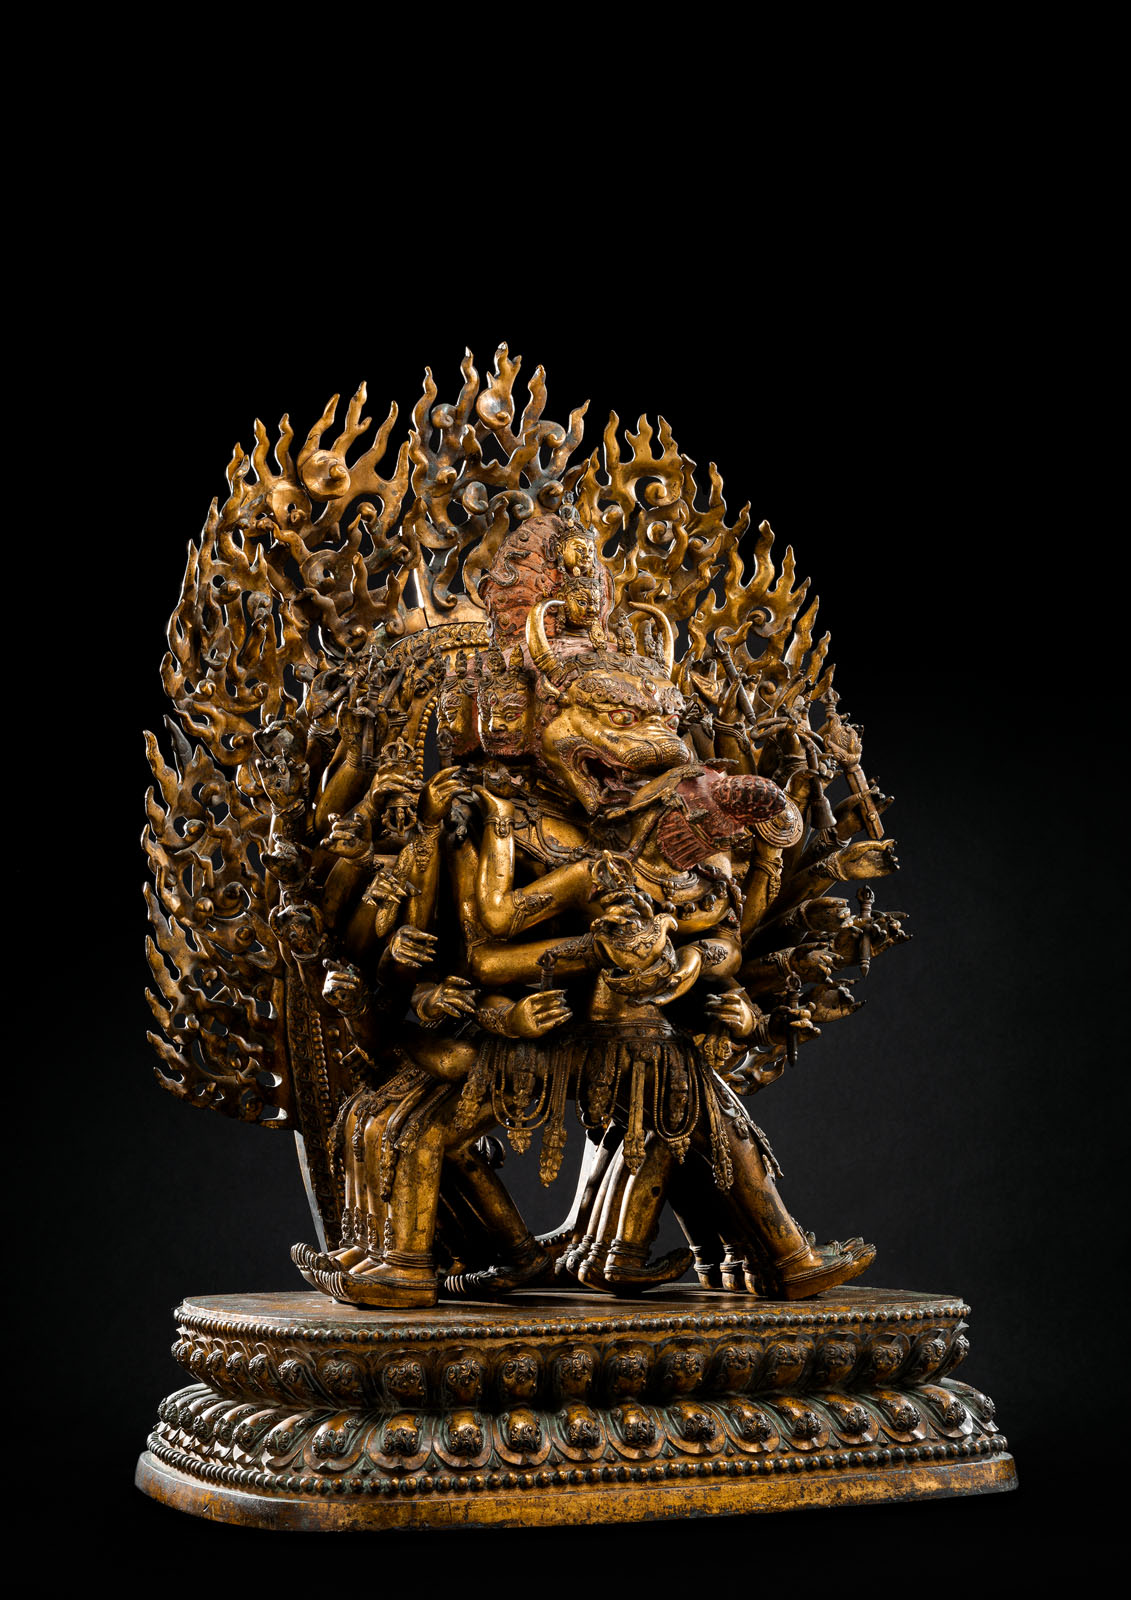 A HIGHLY IMPORTANT MONUMENTAL IMPERIAL GILT-BRONZE FIGURE OF VAJRABHAIRAVA - Image 2 of 8